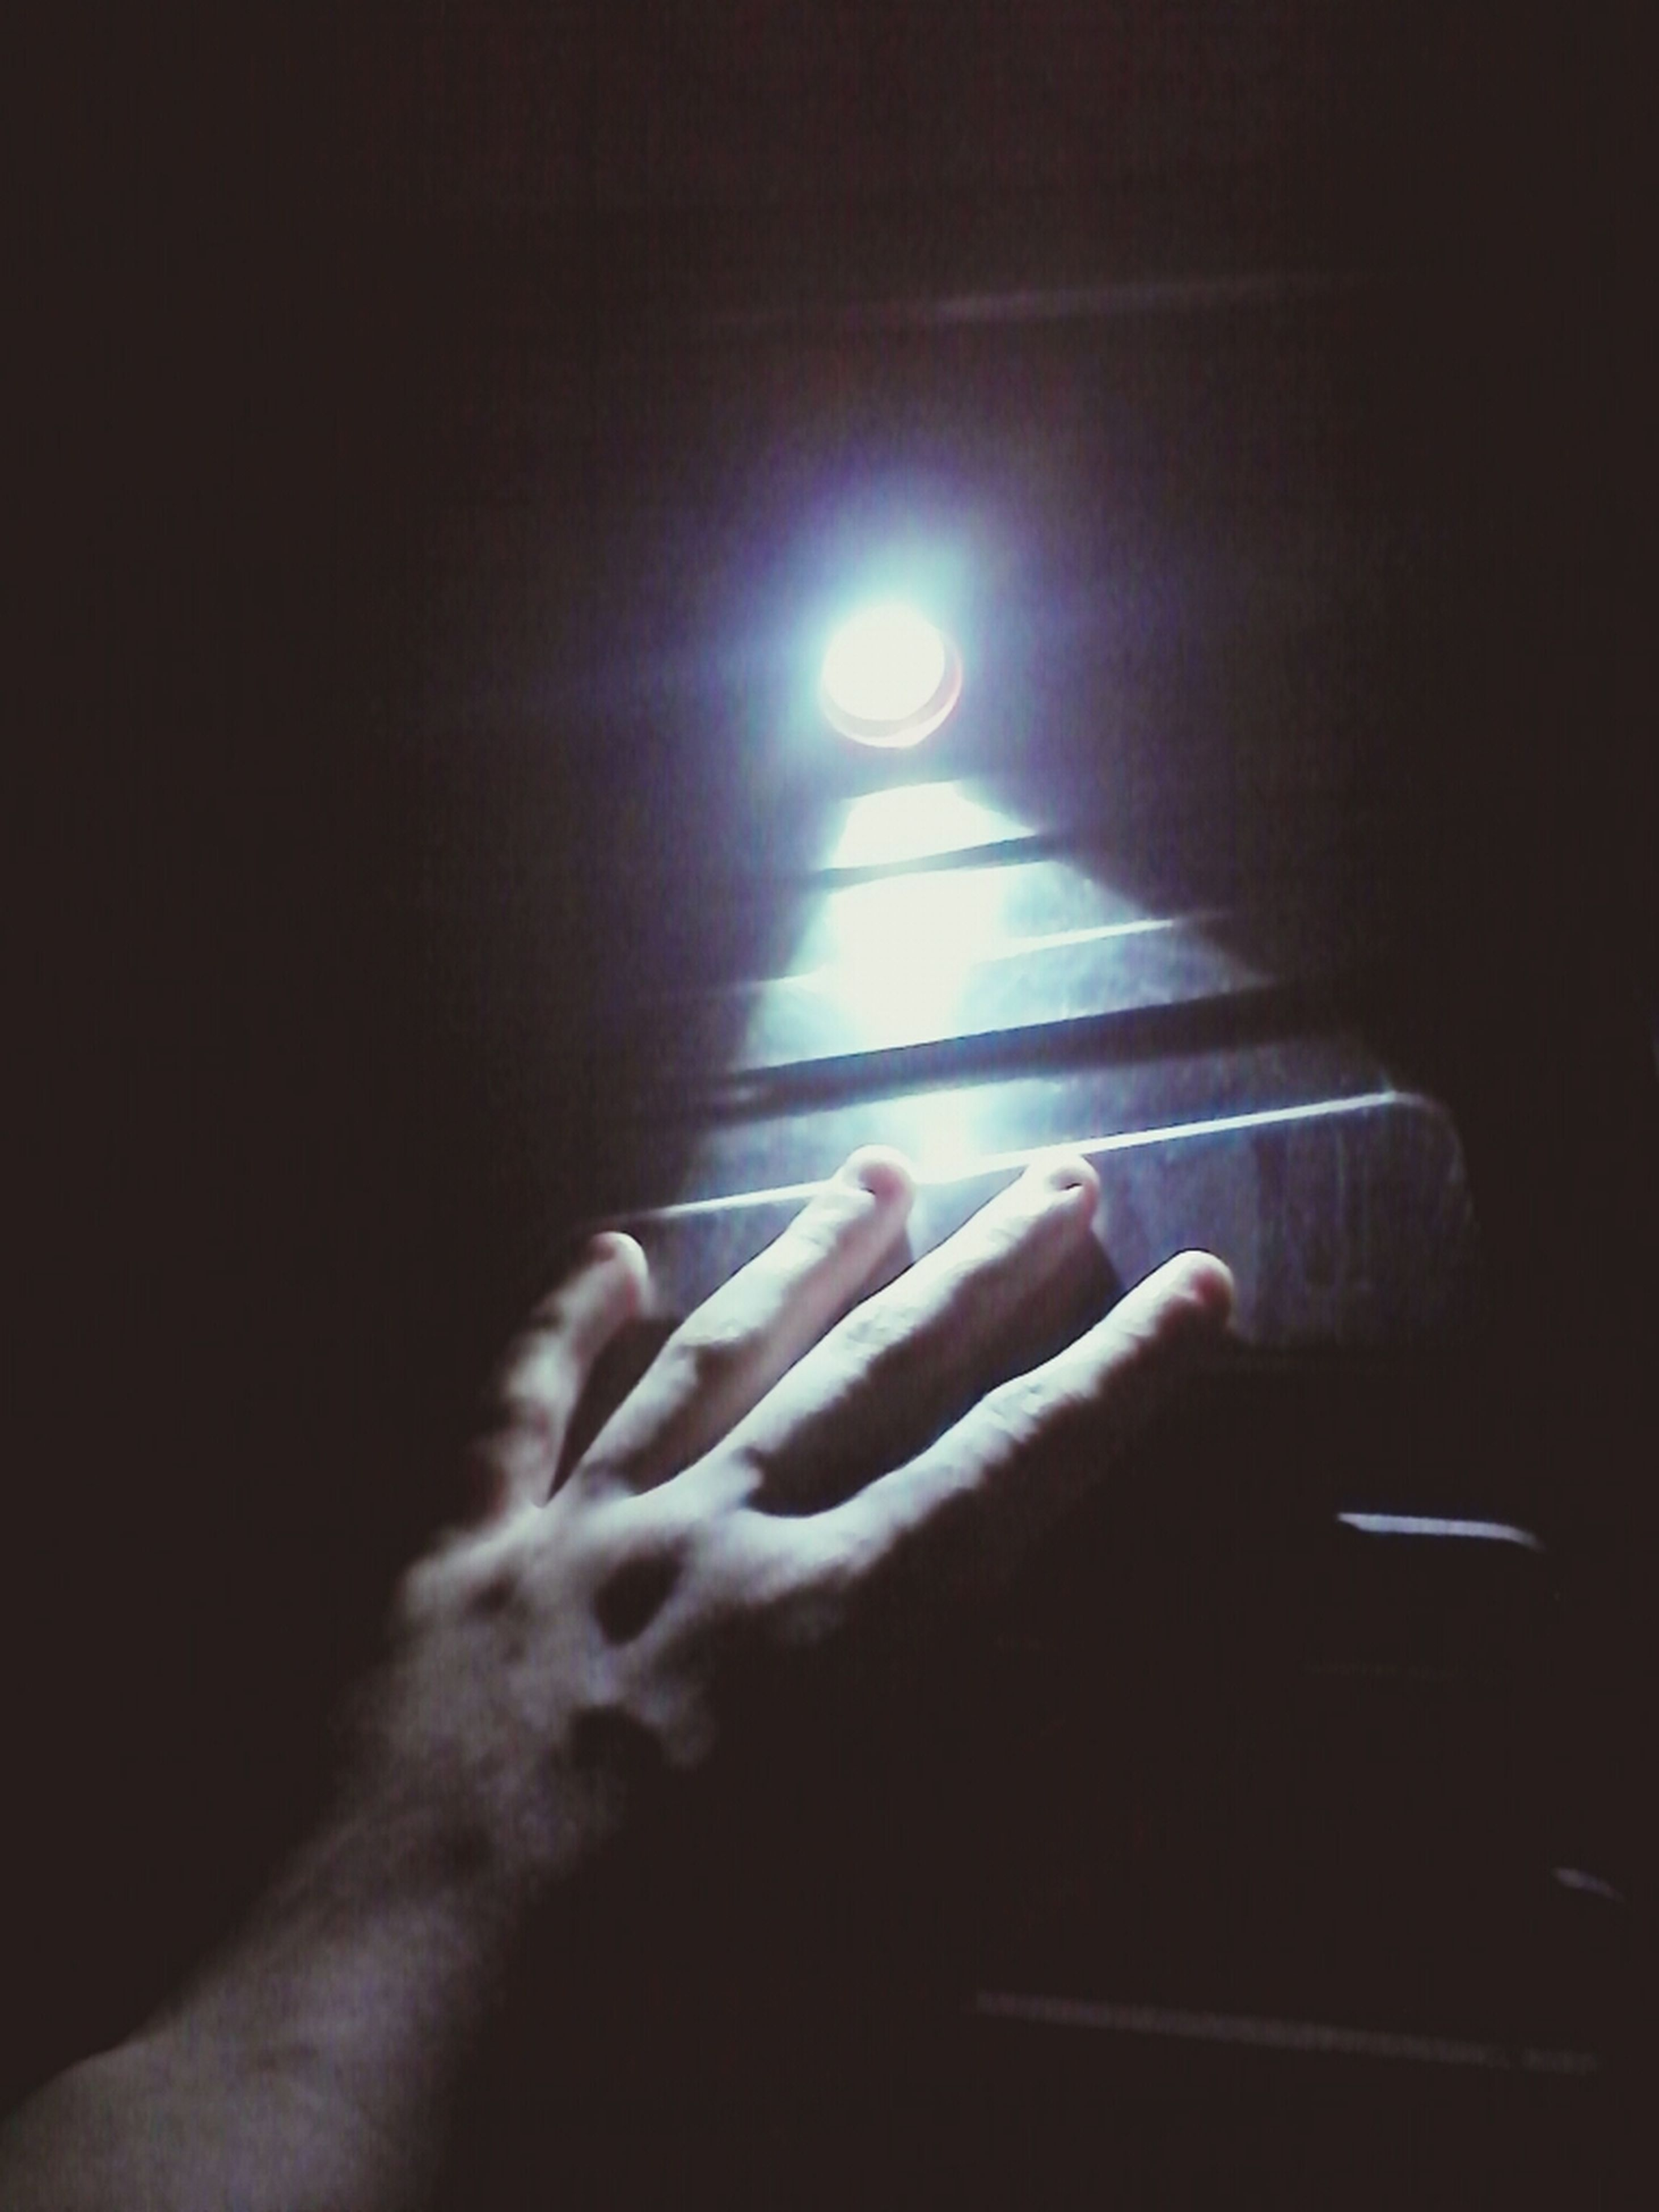 person, part of, human finger, indoors, personal perspective, cropped, unrecognizable person, illuminated, holding, dark, night, close-up, lifestyles, copy space, men, leisure activity, lighting equipment